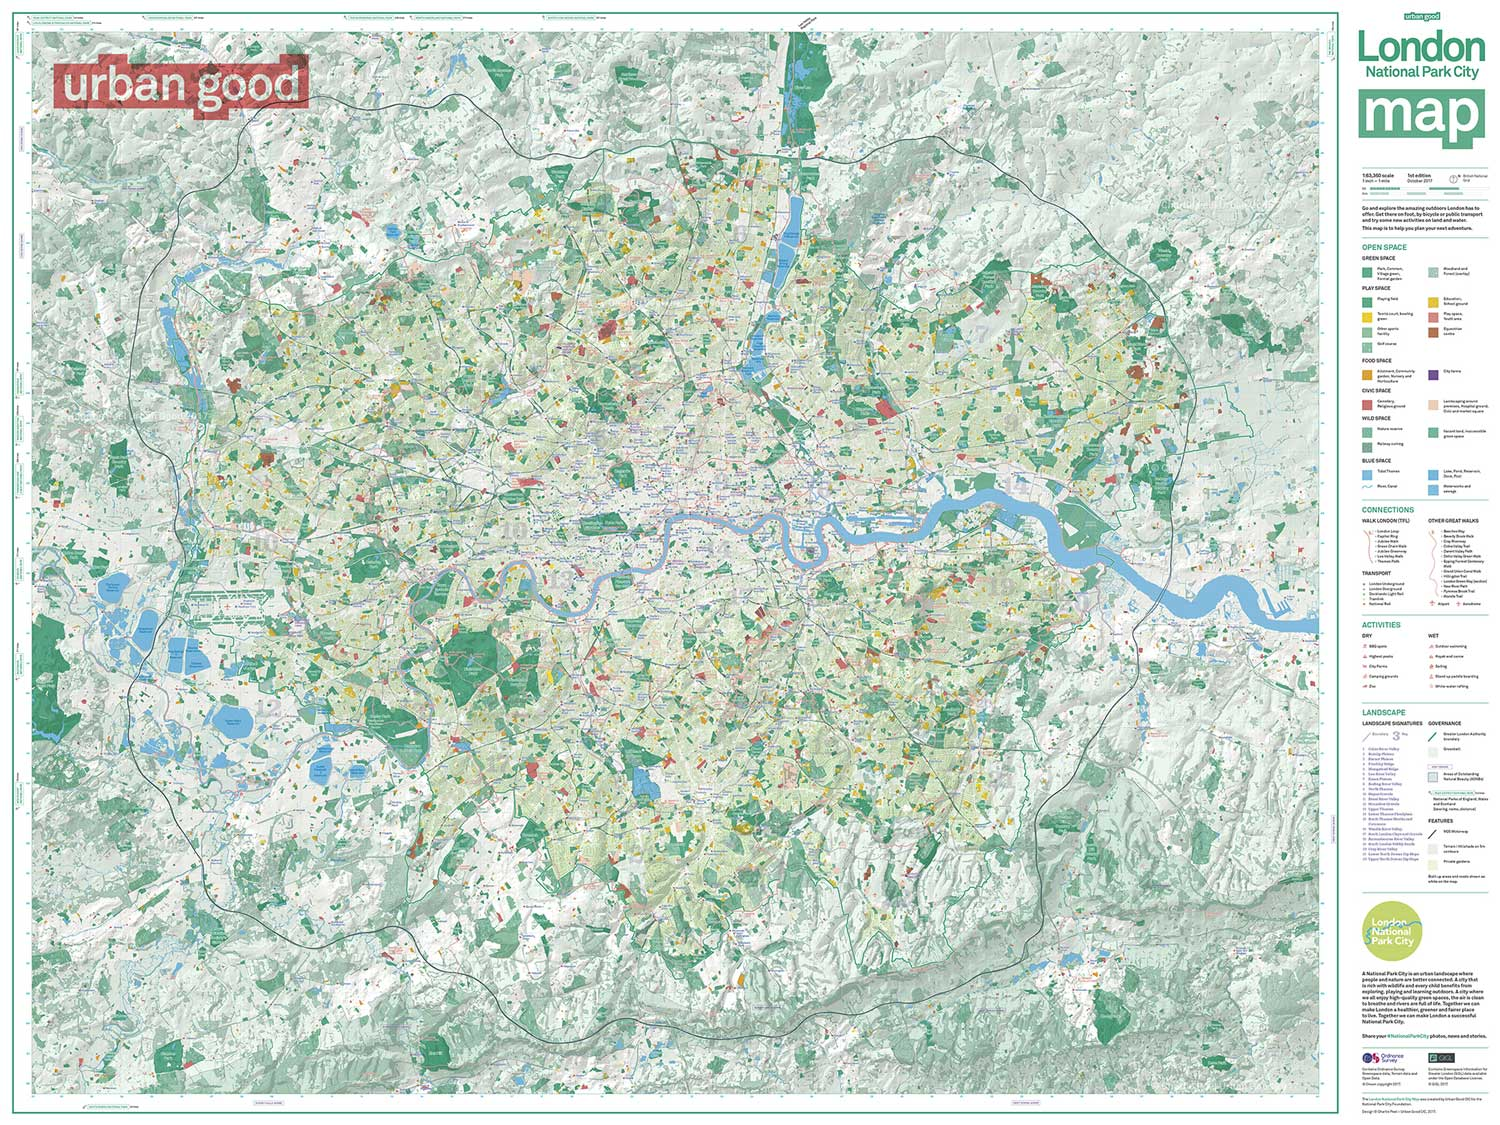 Our map of London